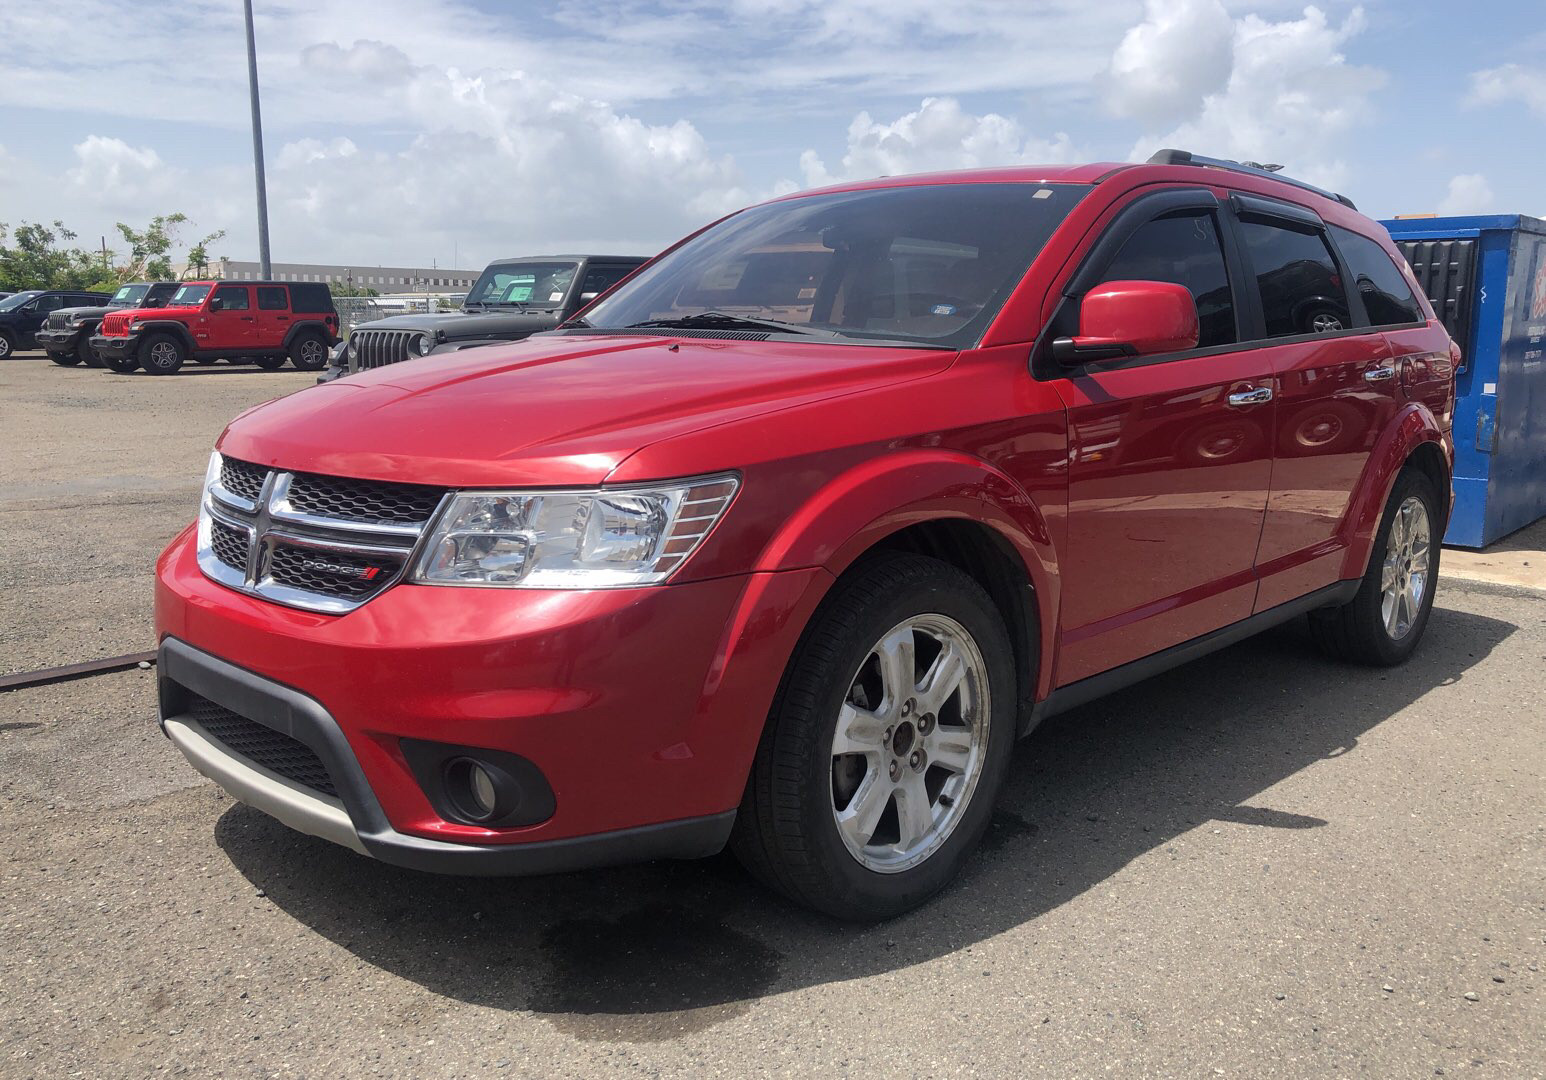 2012 Dodge Journey Tire Size >> Dodge Journey Red 2012 Alberic Colon Chrysler